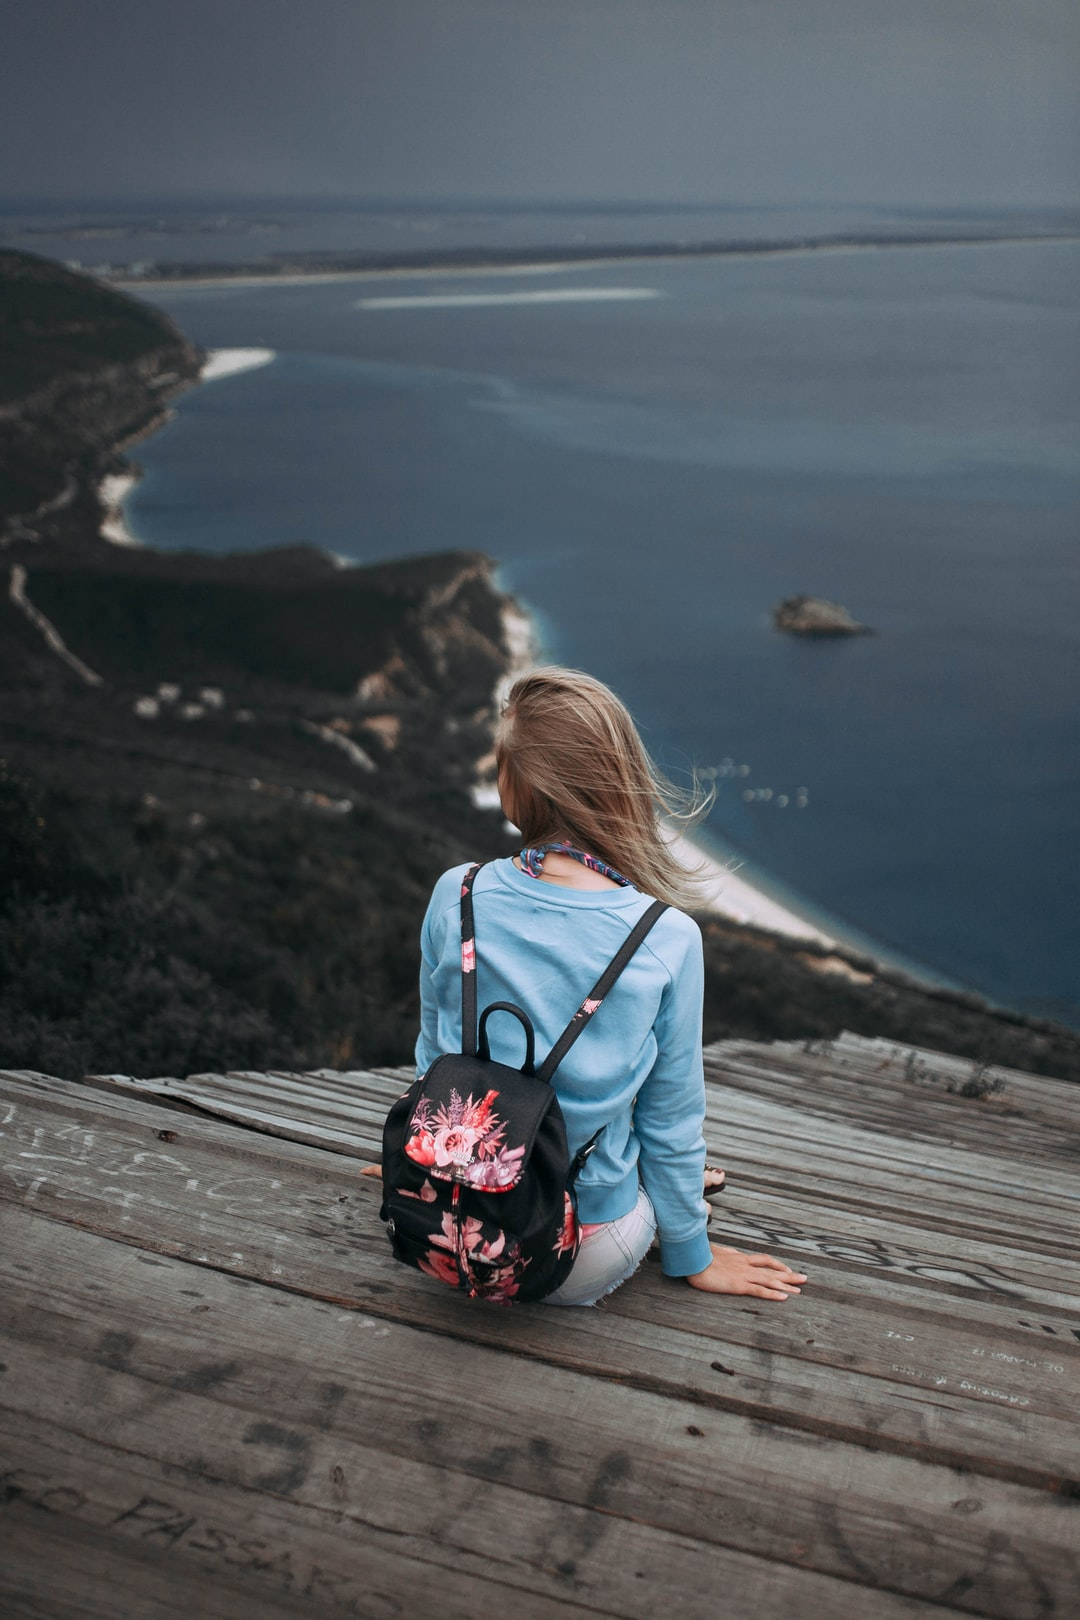 500+ Lonely Girl Pictures | Download Free Images on Unsplash